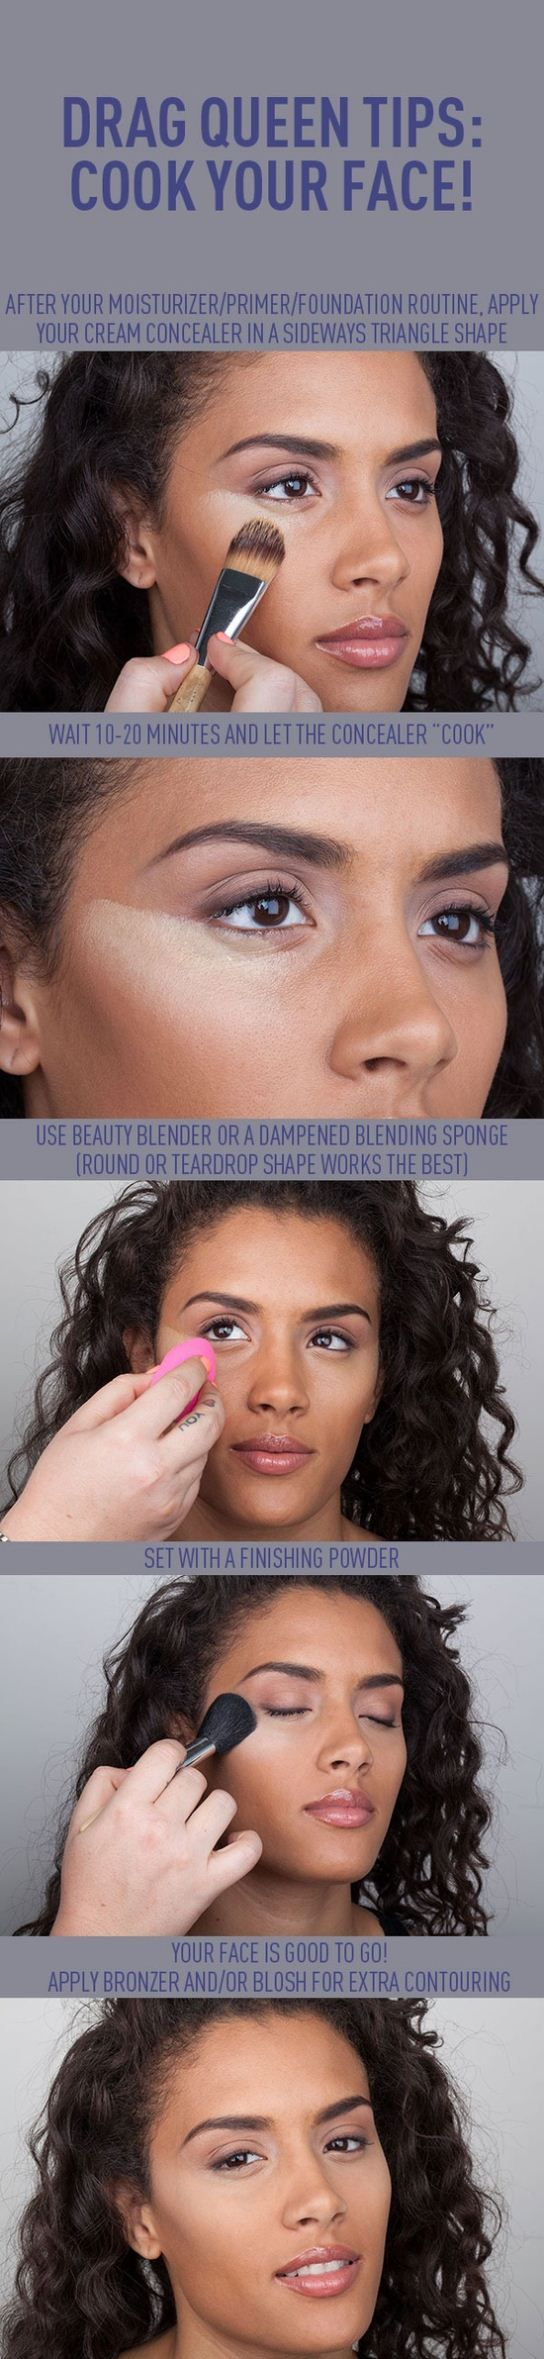 This is a good technique. I use Ben Nye Banana Luxury Powder to set the concealer under my eyes.